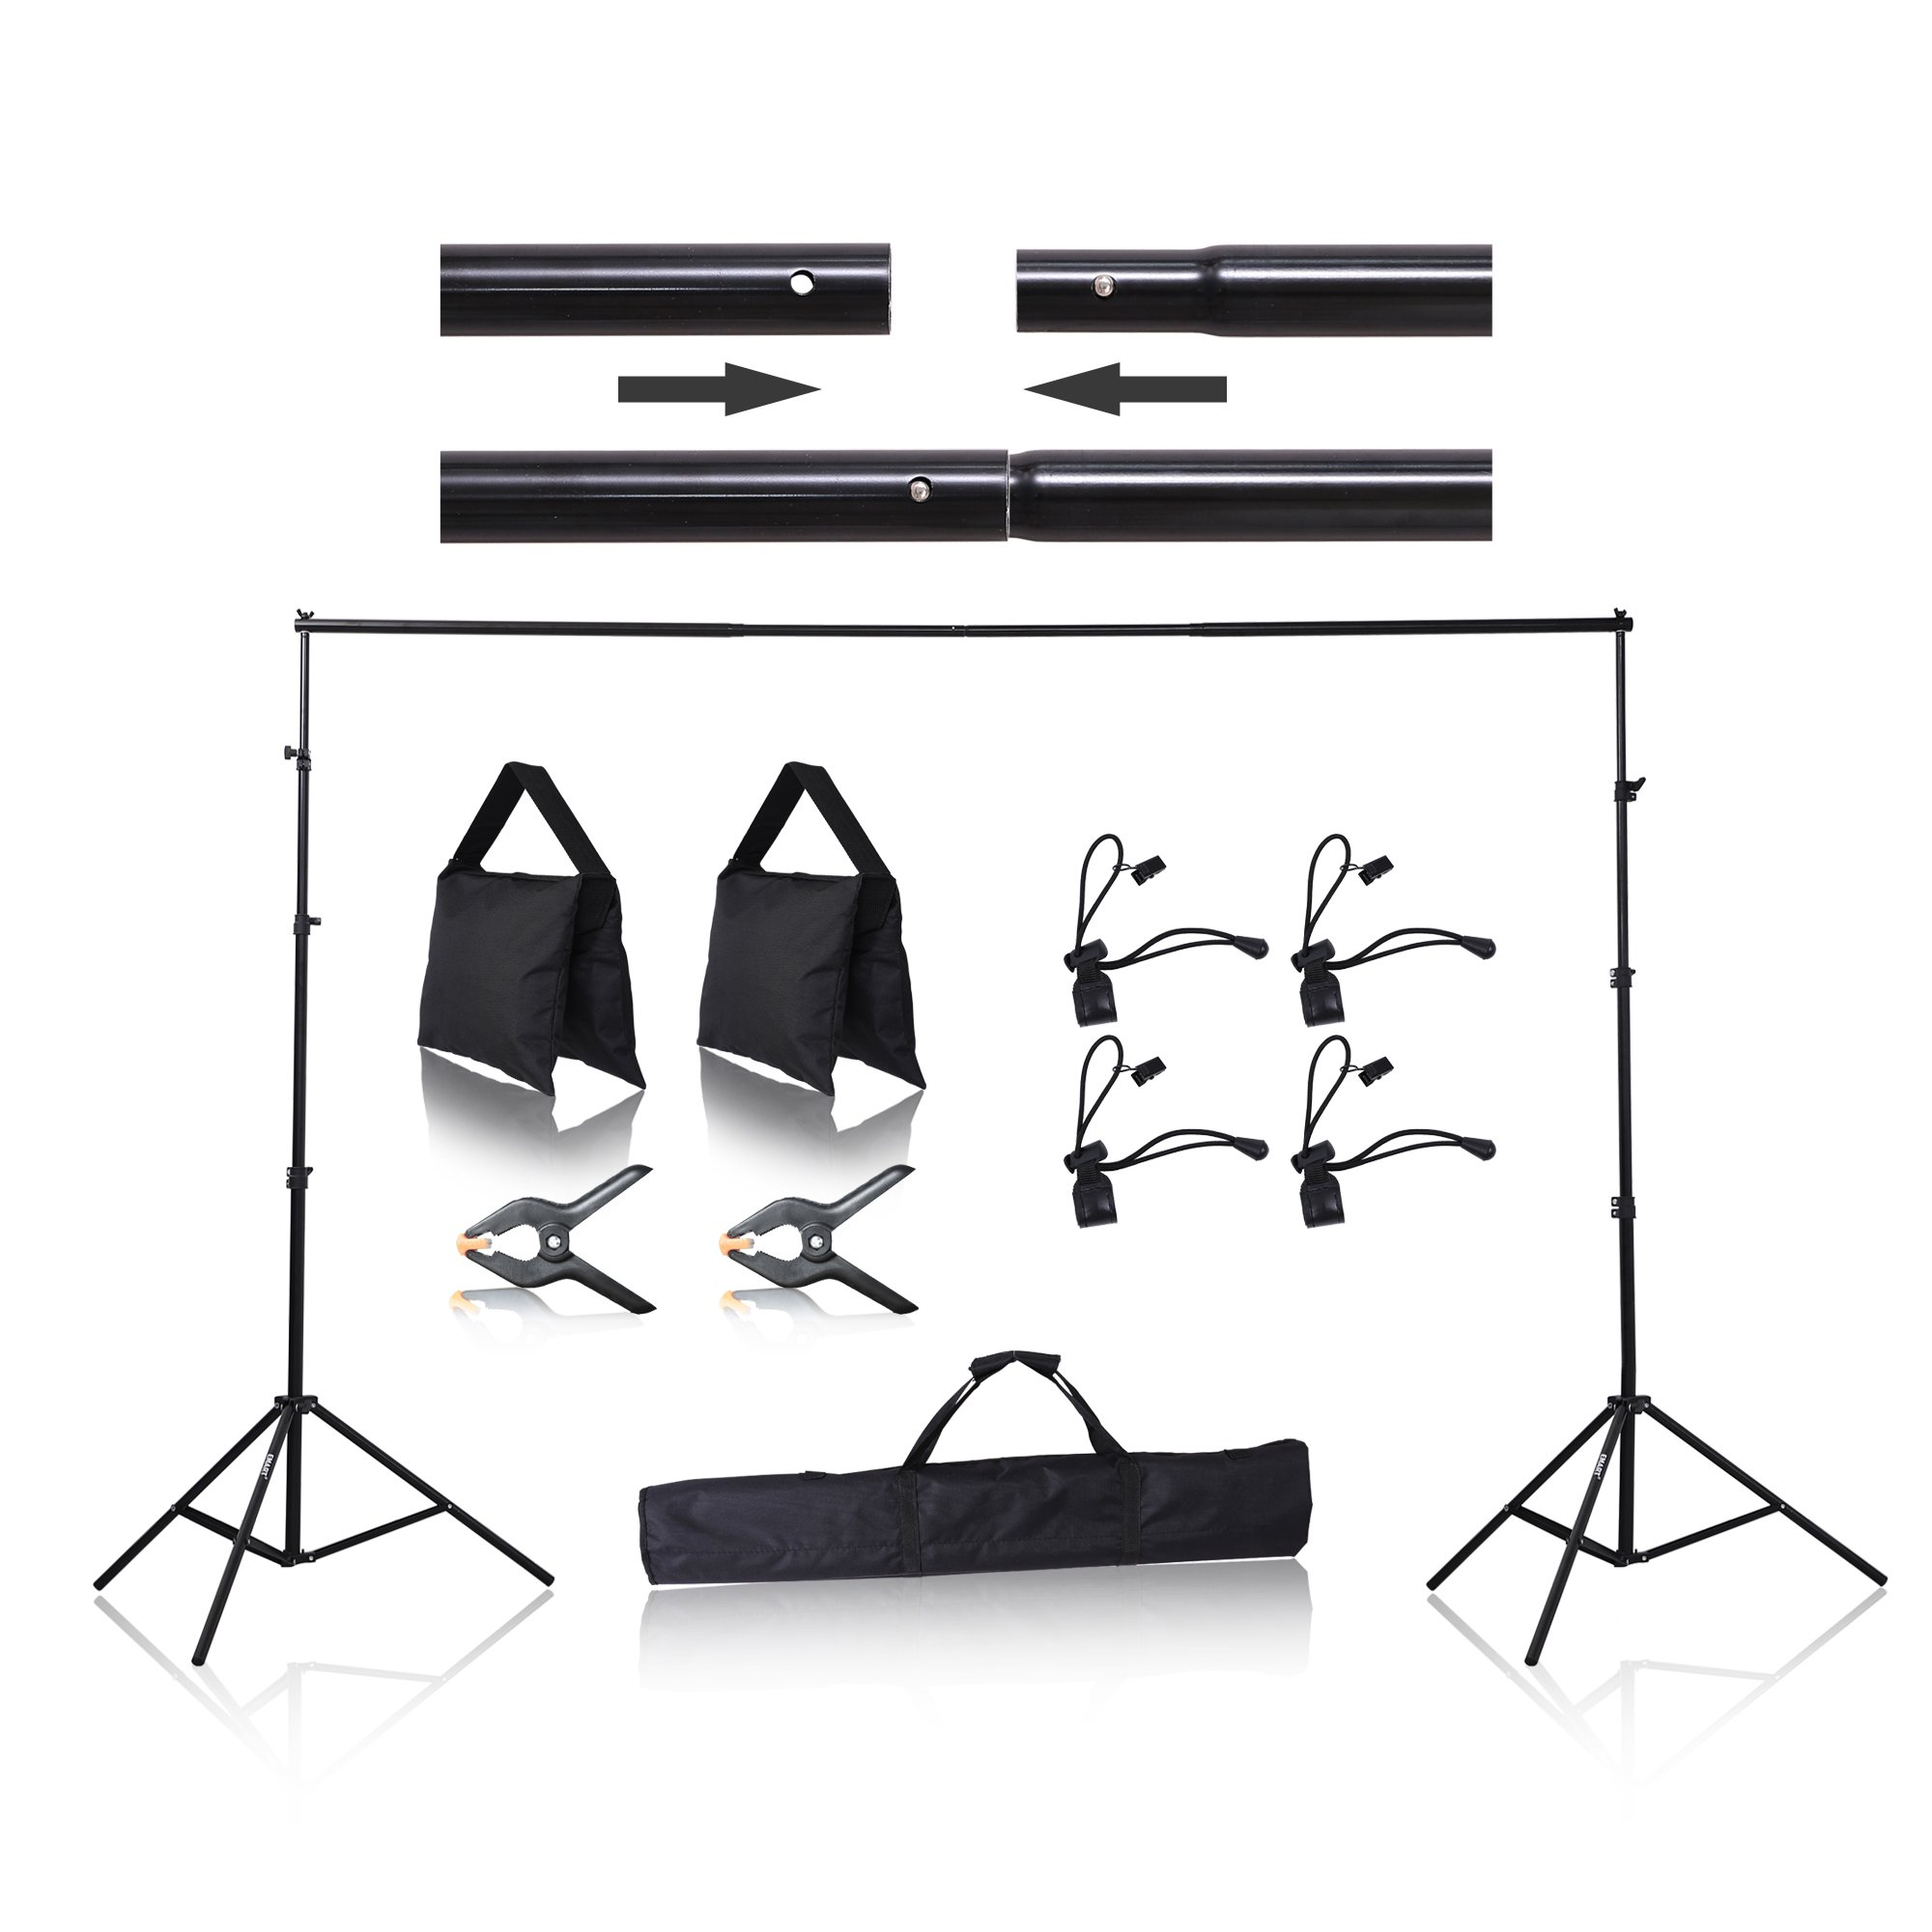 Emart 8.5 x 10 ft Photo Backdrop Stand, Adjustable Photography Muslin Background Support System Stand for Photo Video Studio